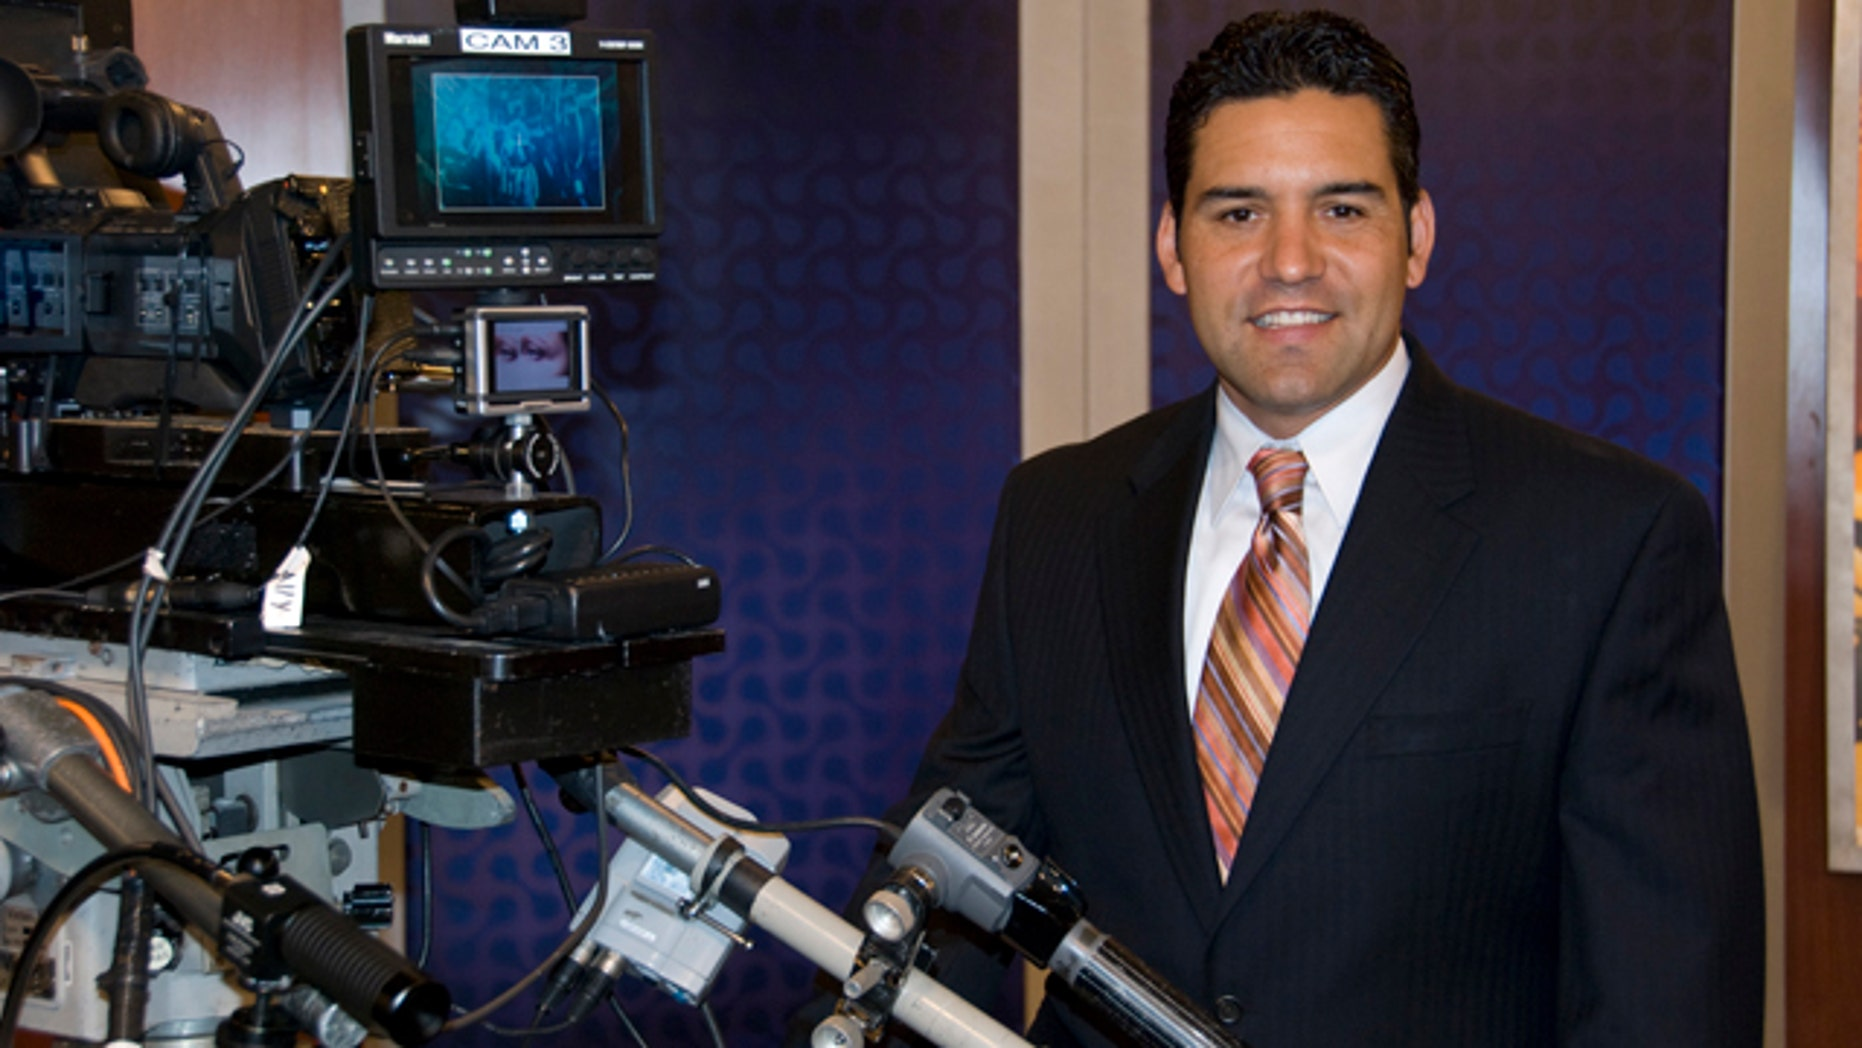 Rolando Nichols is a successful media entrepreneur who left a privileged position in Spanish media to achieve his very own American dream: create his own media production company, Centro Net Productions, based in Torrence, California.